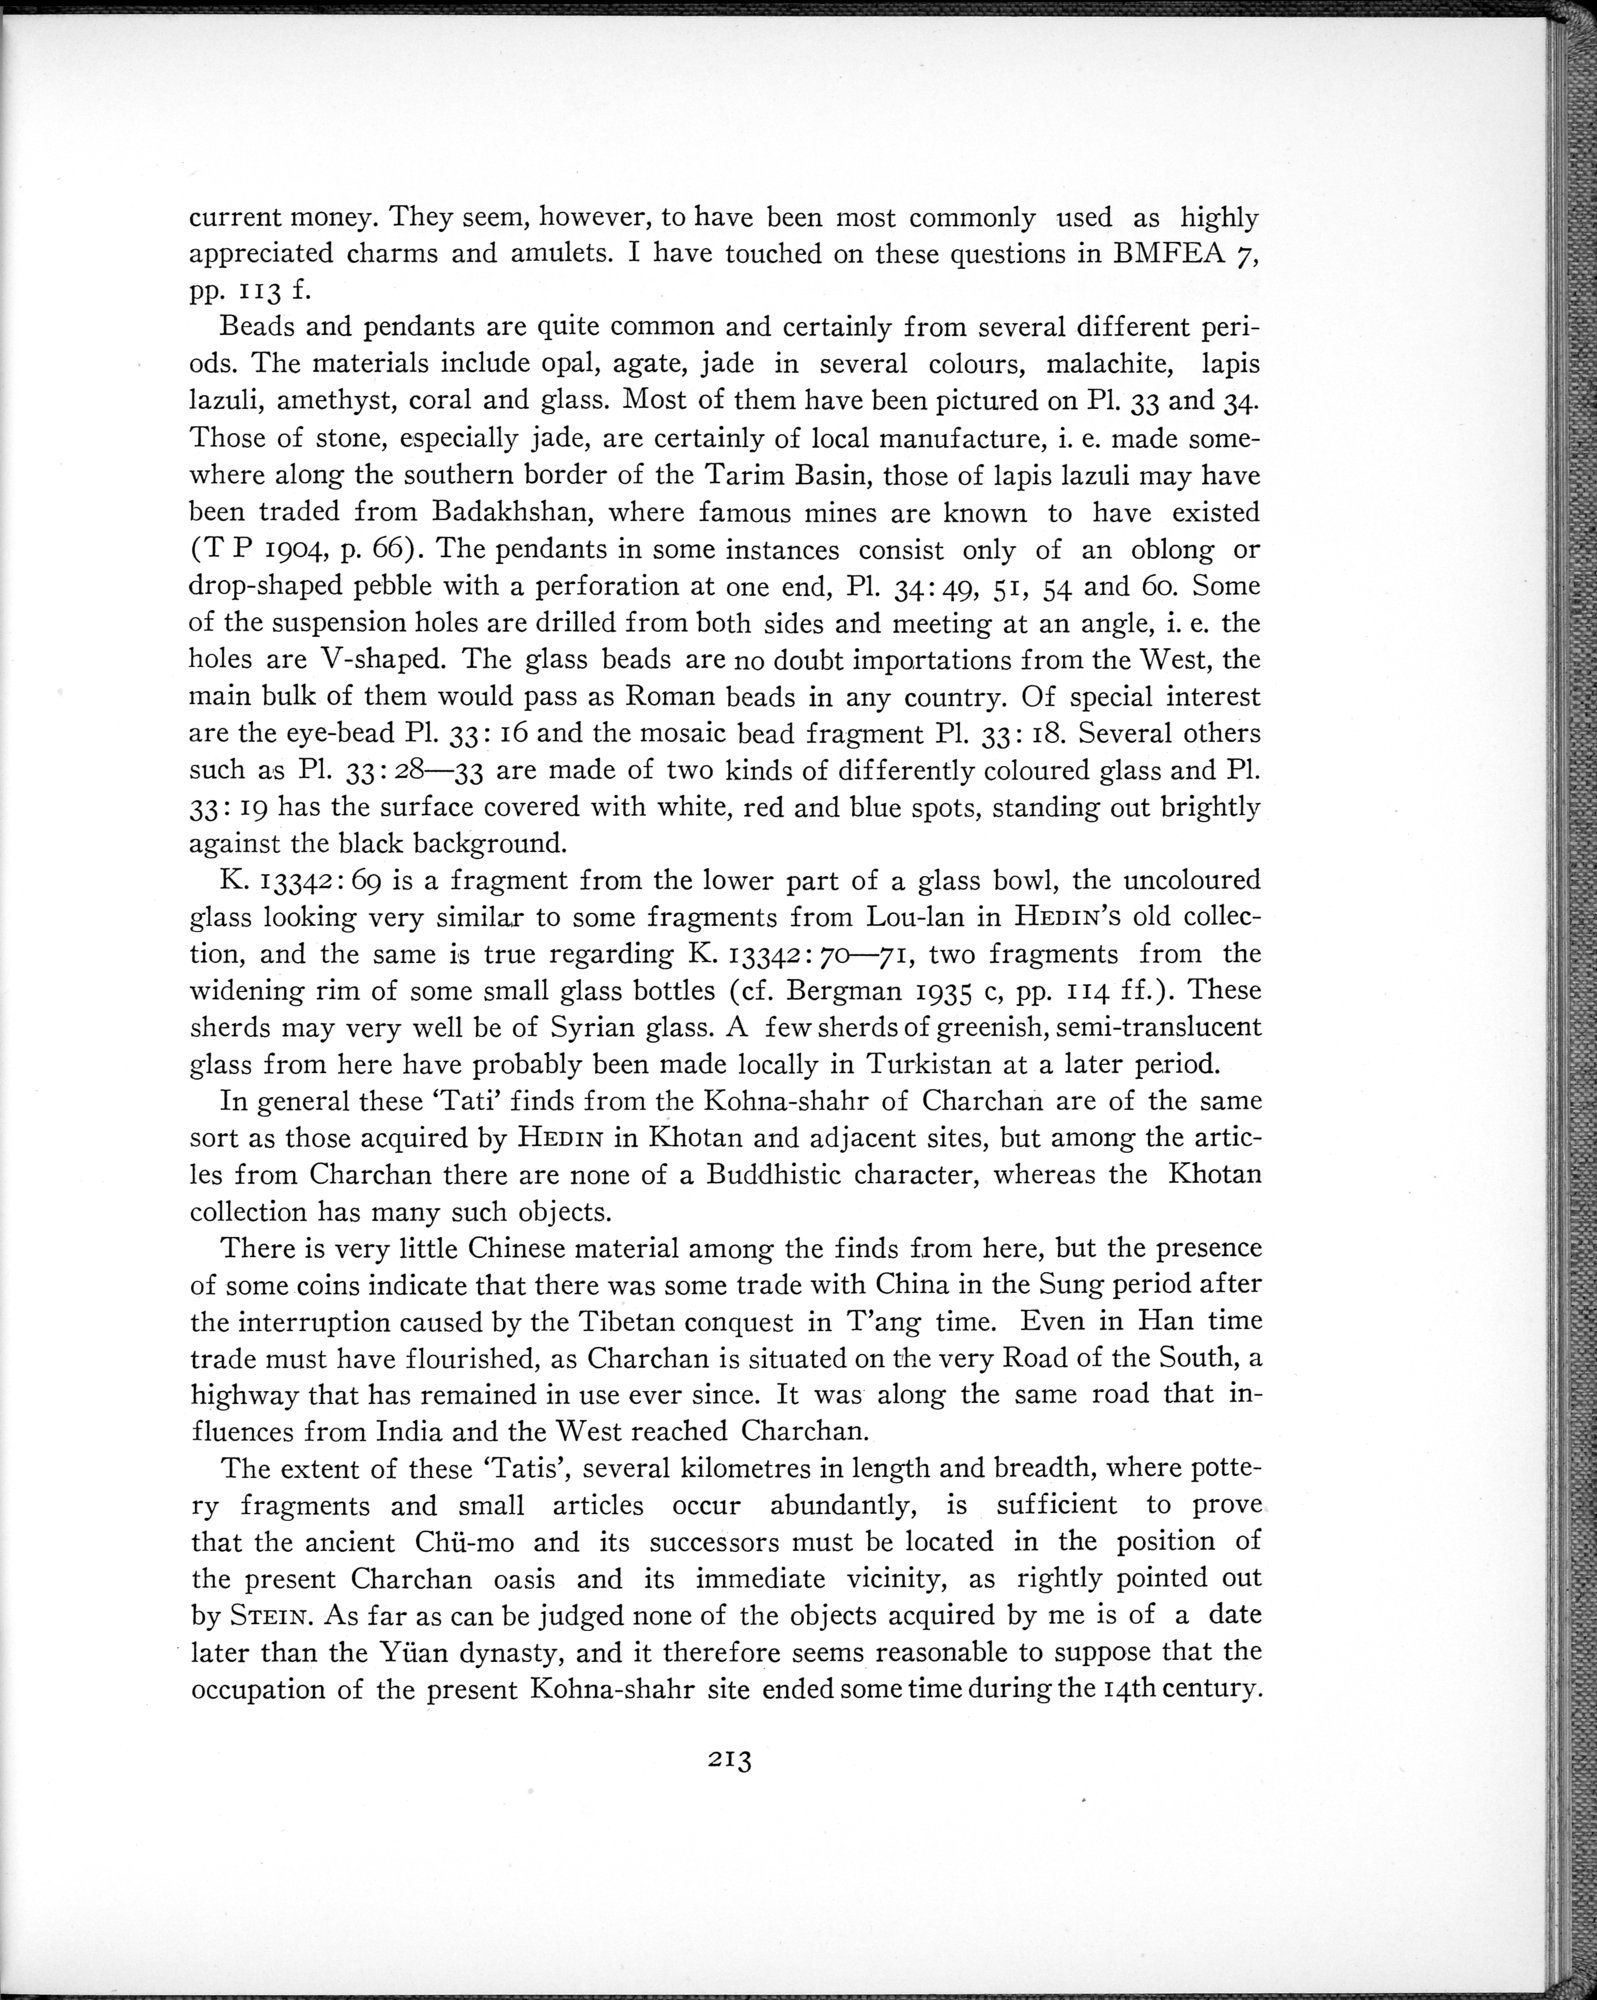 Archaeological Researches in Sinkiang : vol.1 / Page 237 (Grayscale High Resolution Image)